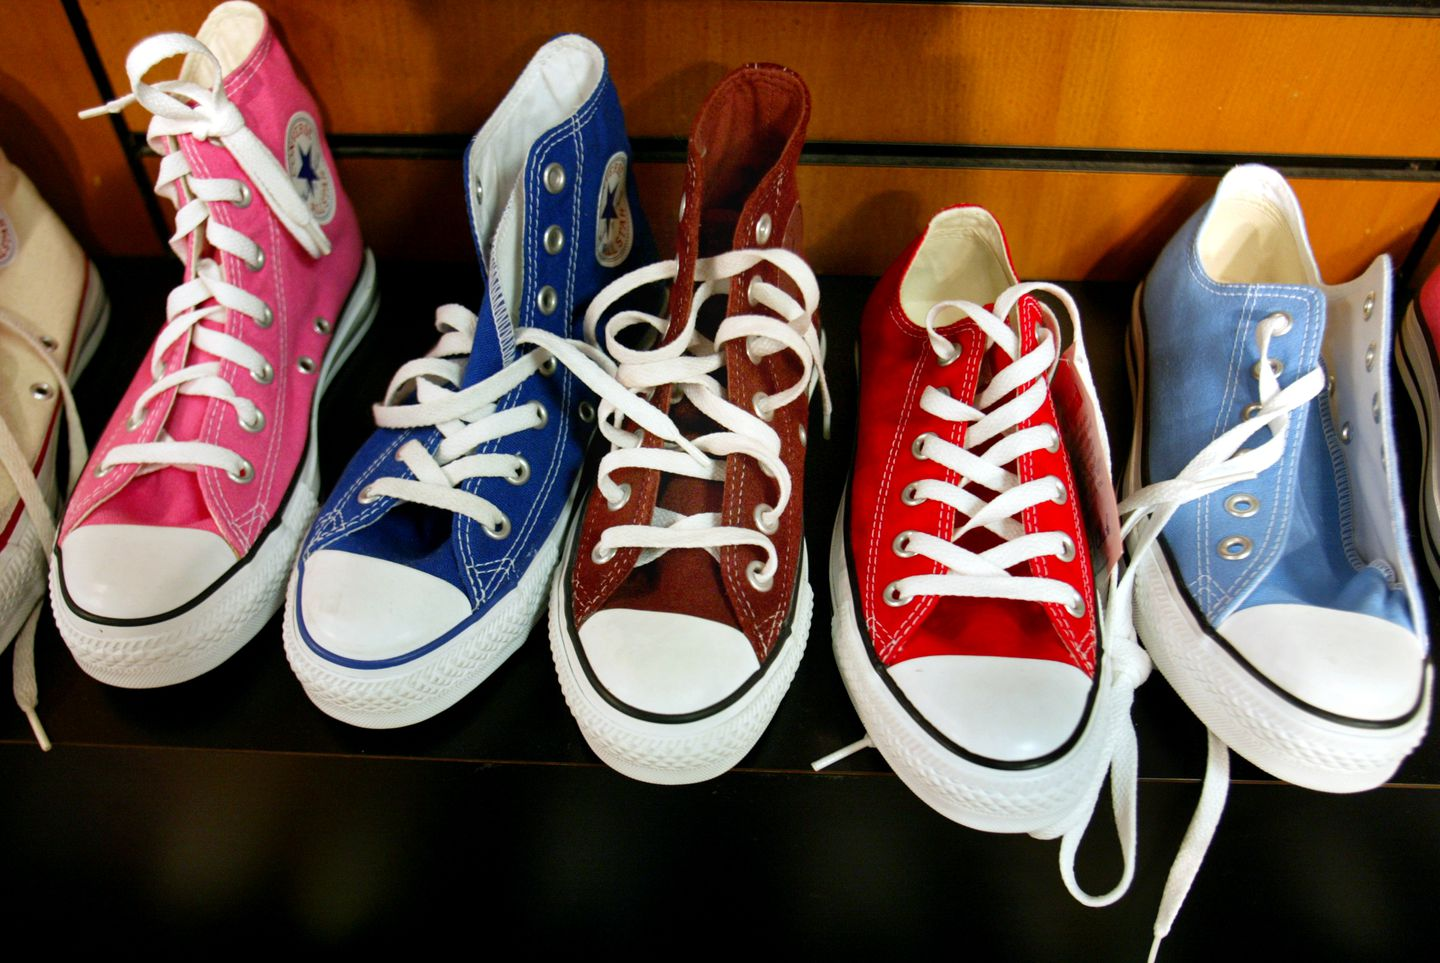 Converse's new Chuck Taylors get a comfort boost The